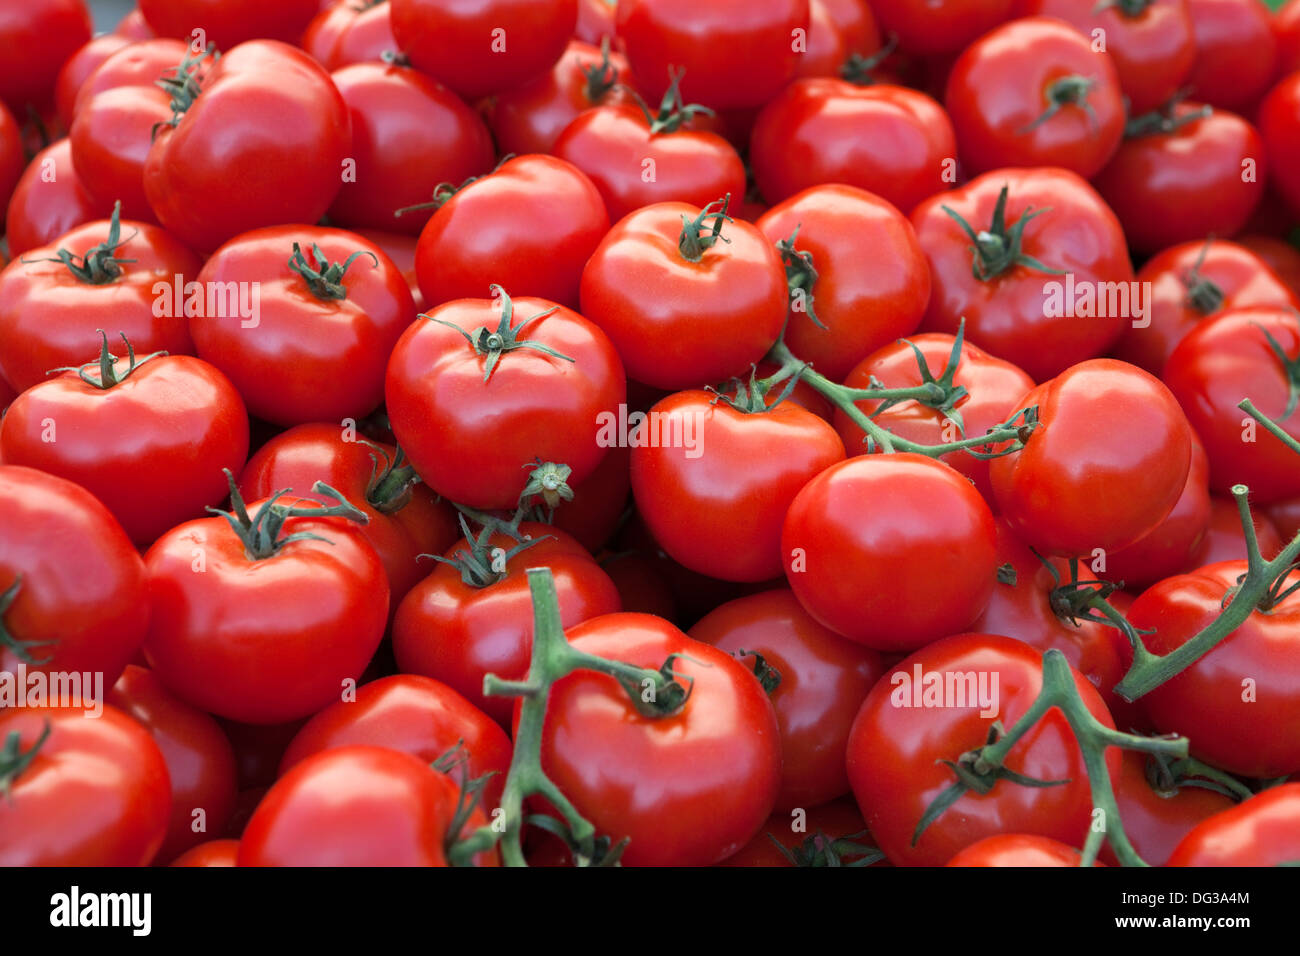 Tomato stall in the marketplace, Hanover, Lower Saxony, Germany, Europe, - Stock Image